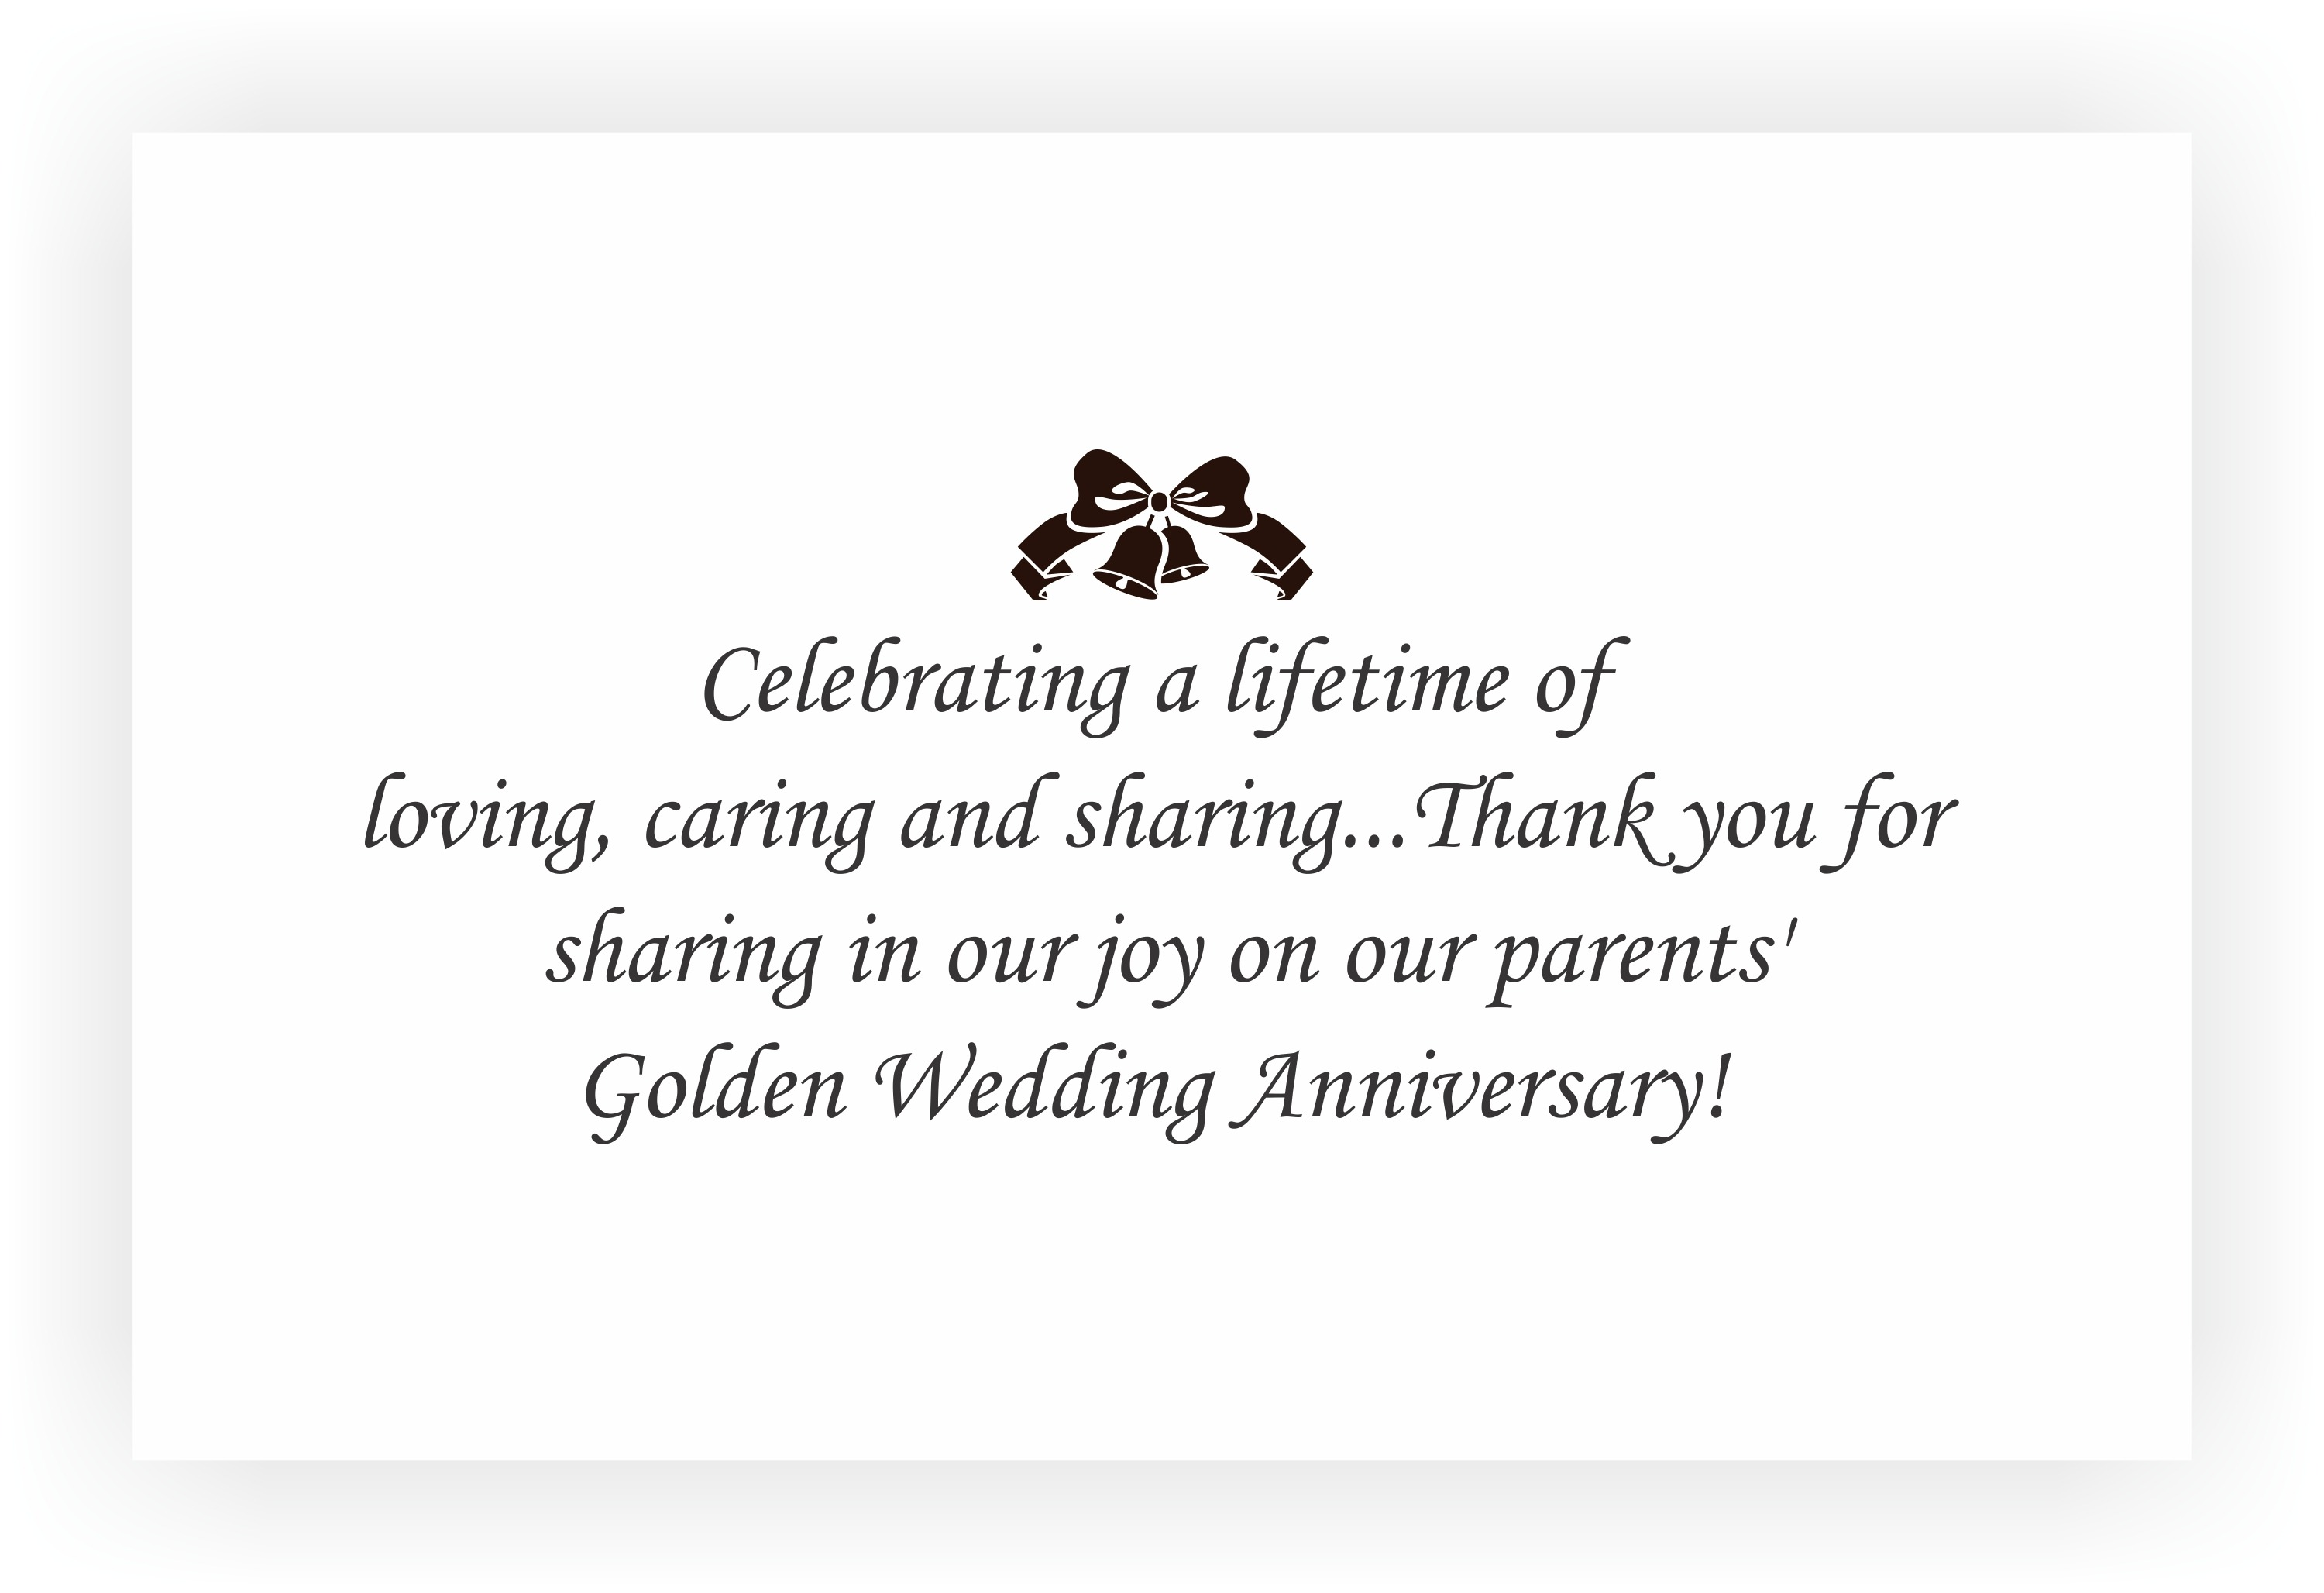 Wedding Return Gifts For Friends: 50th Marriage Anniversary Invitation & Return Gifts